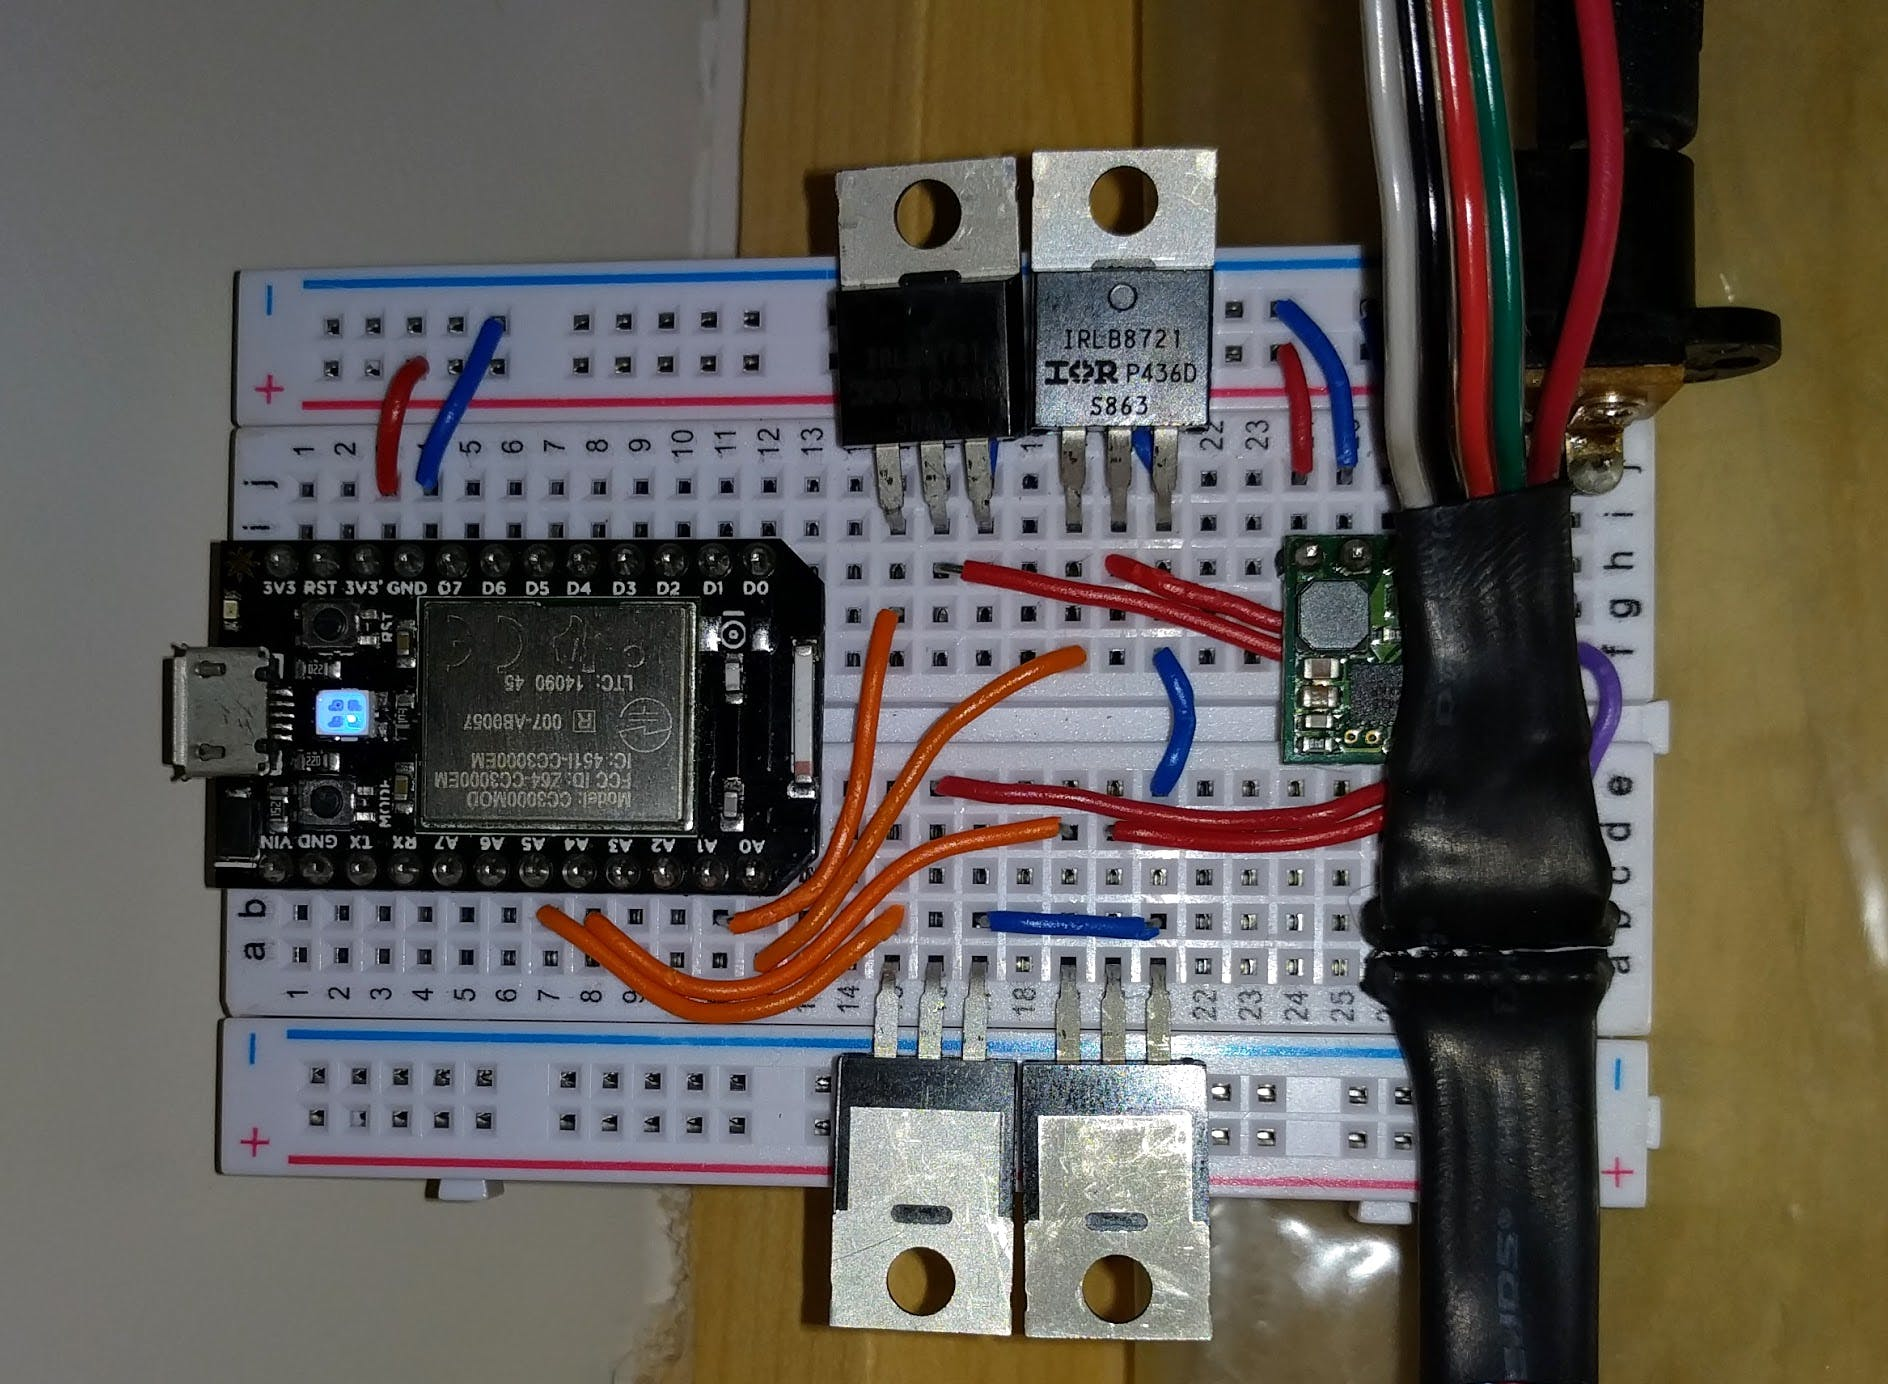 this shows the board powered up with the LED strip connectons on the lower right